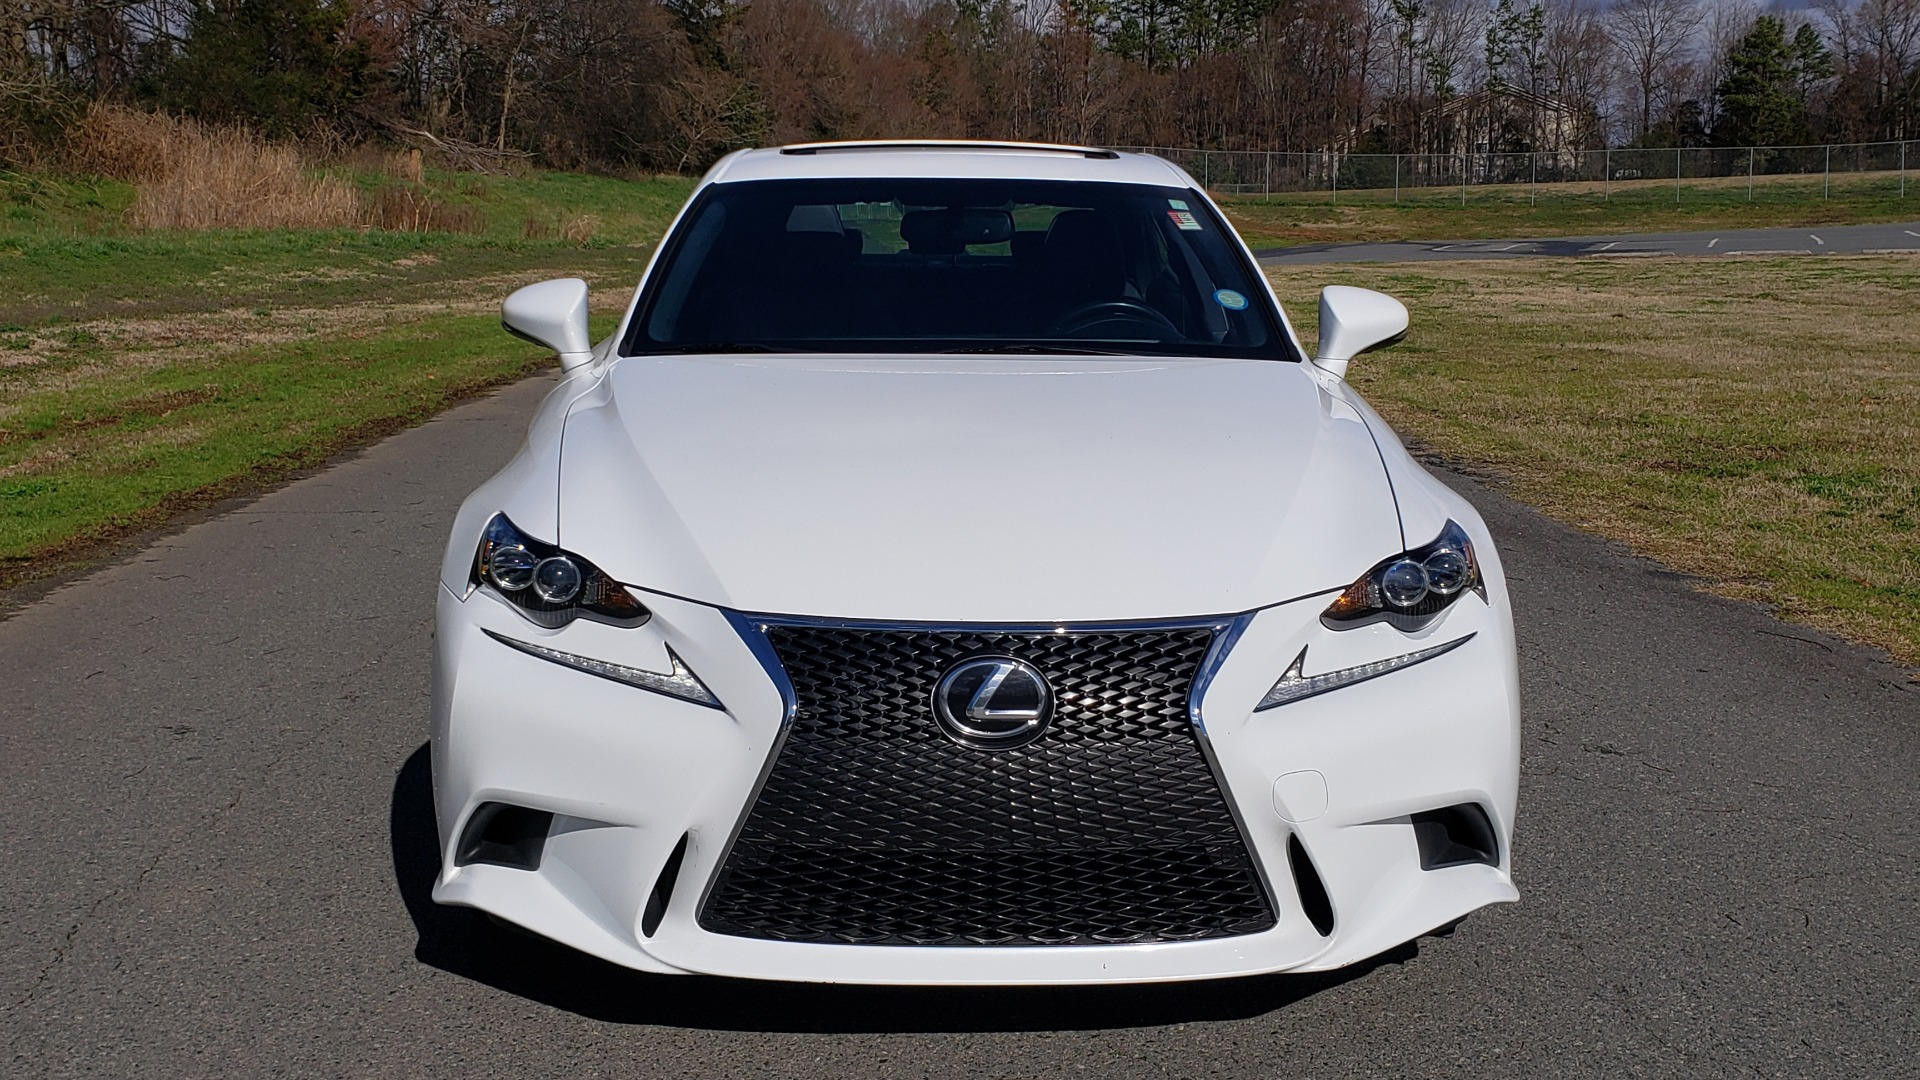 Used 2014 Lexus IS 250 F-SPORT / NAV / SUNROOF / REARVIEW / BSM for sale Sold at Formula Imports in Charlotte NC 28227 20